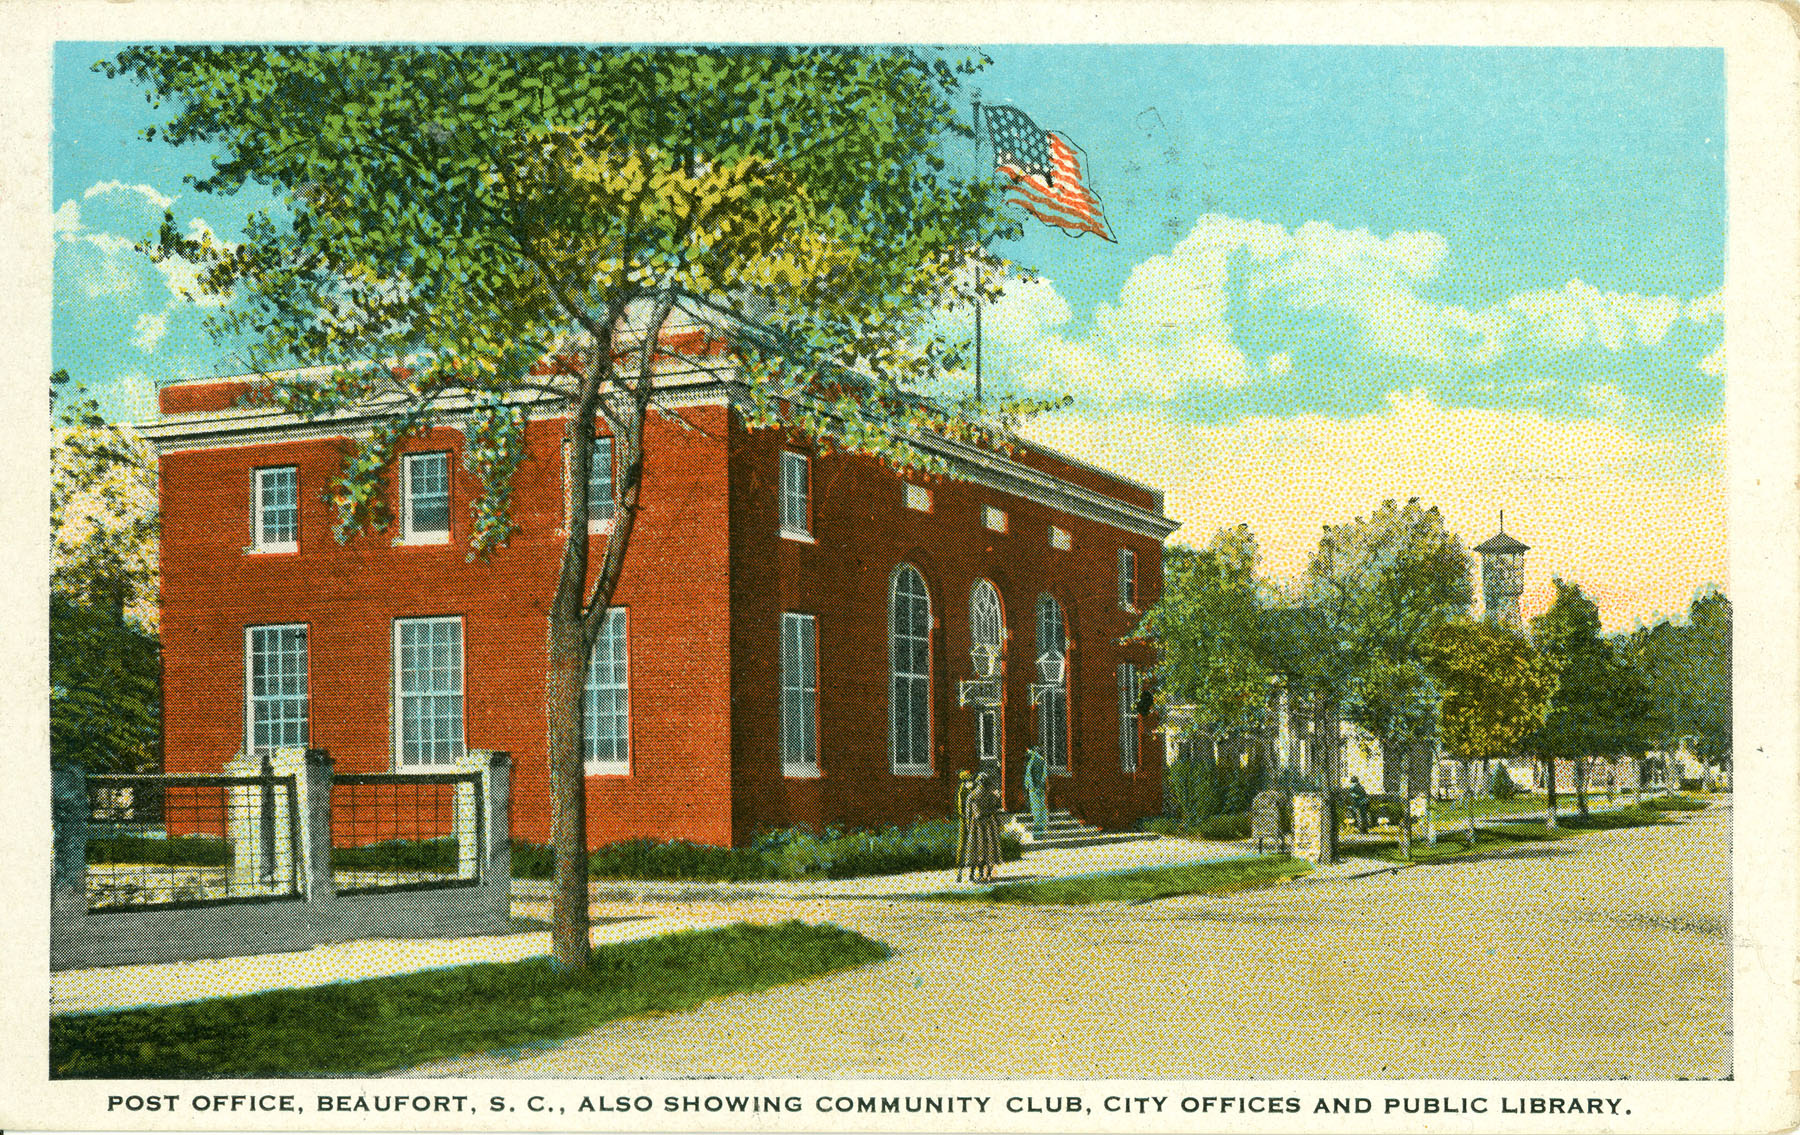 Post Office, Beaufort, South Carolina Also Showing Community Club, City Offices and Public Library